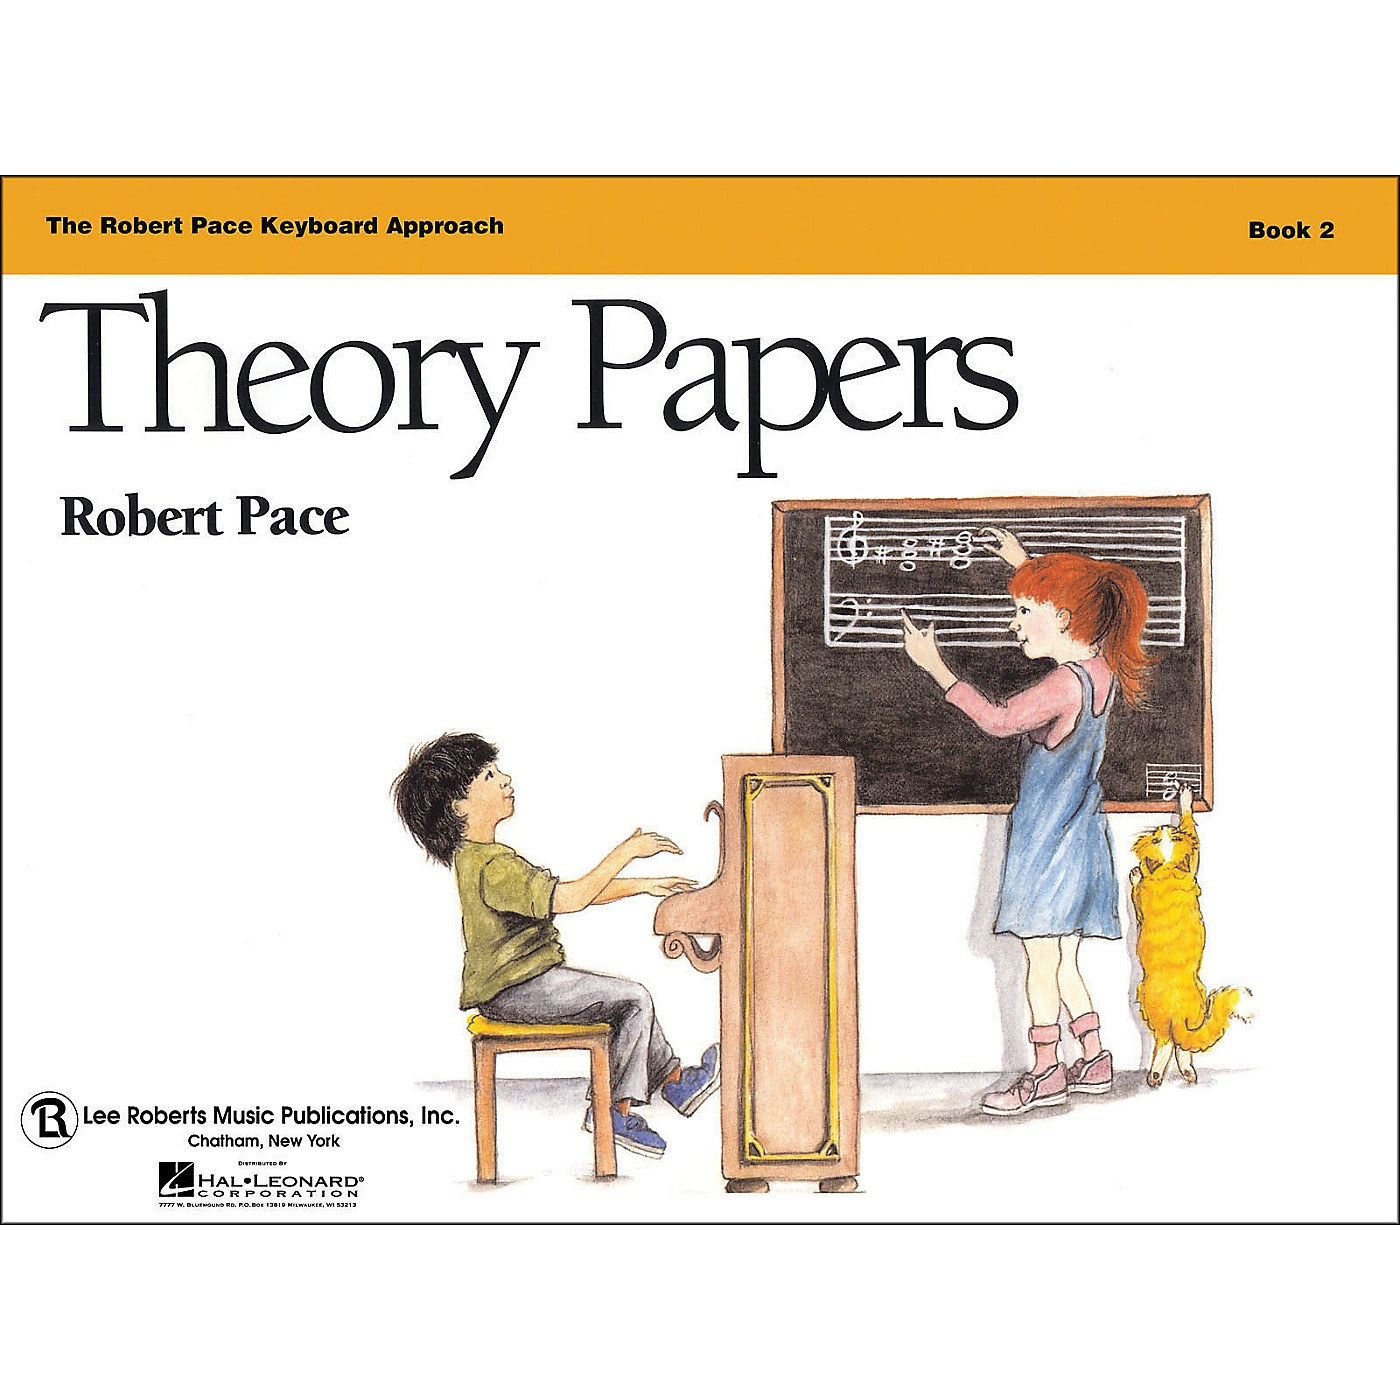 Hal Leonard Theory Papers Book 2, Piano Revised, The Robert Pace Keyboard Approach thumbnail